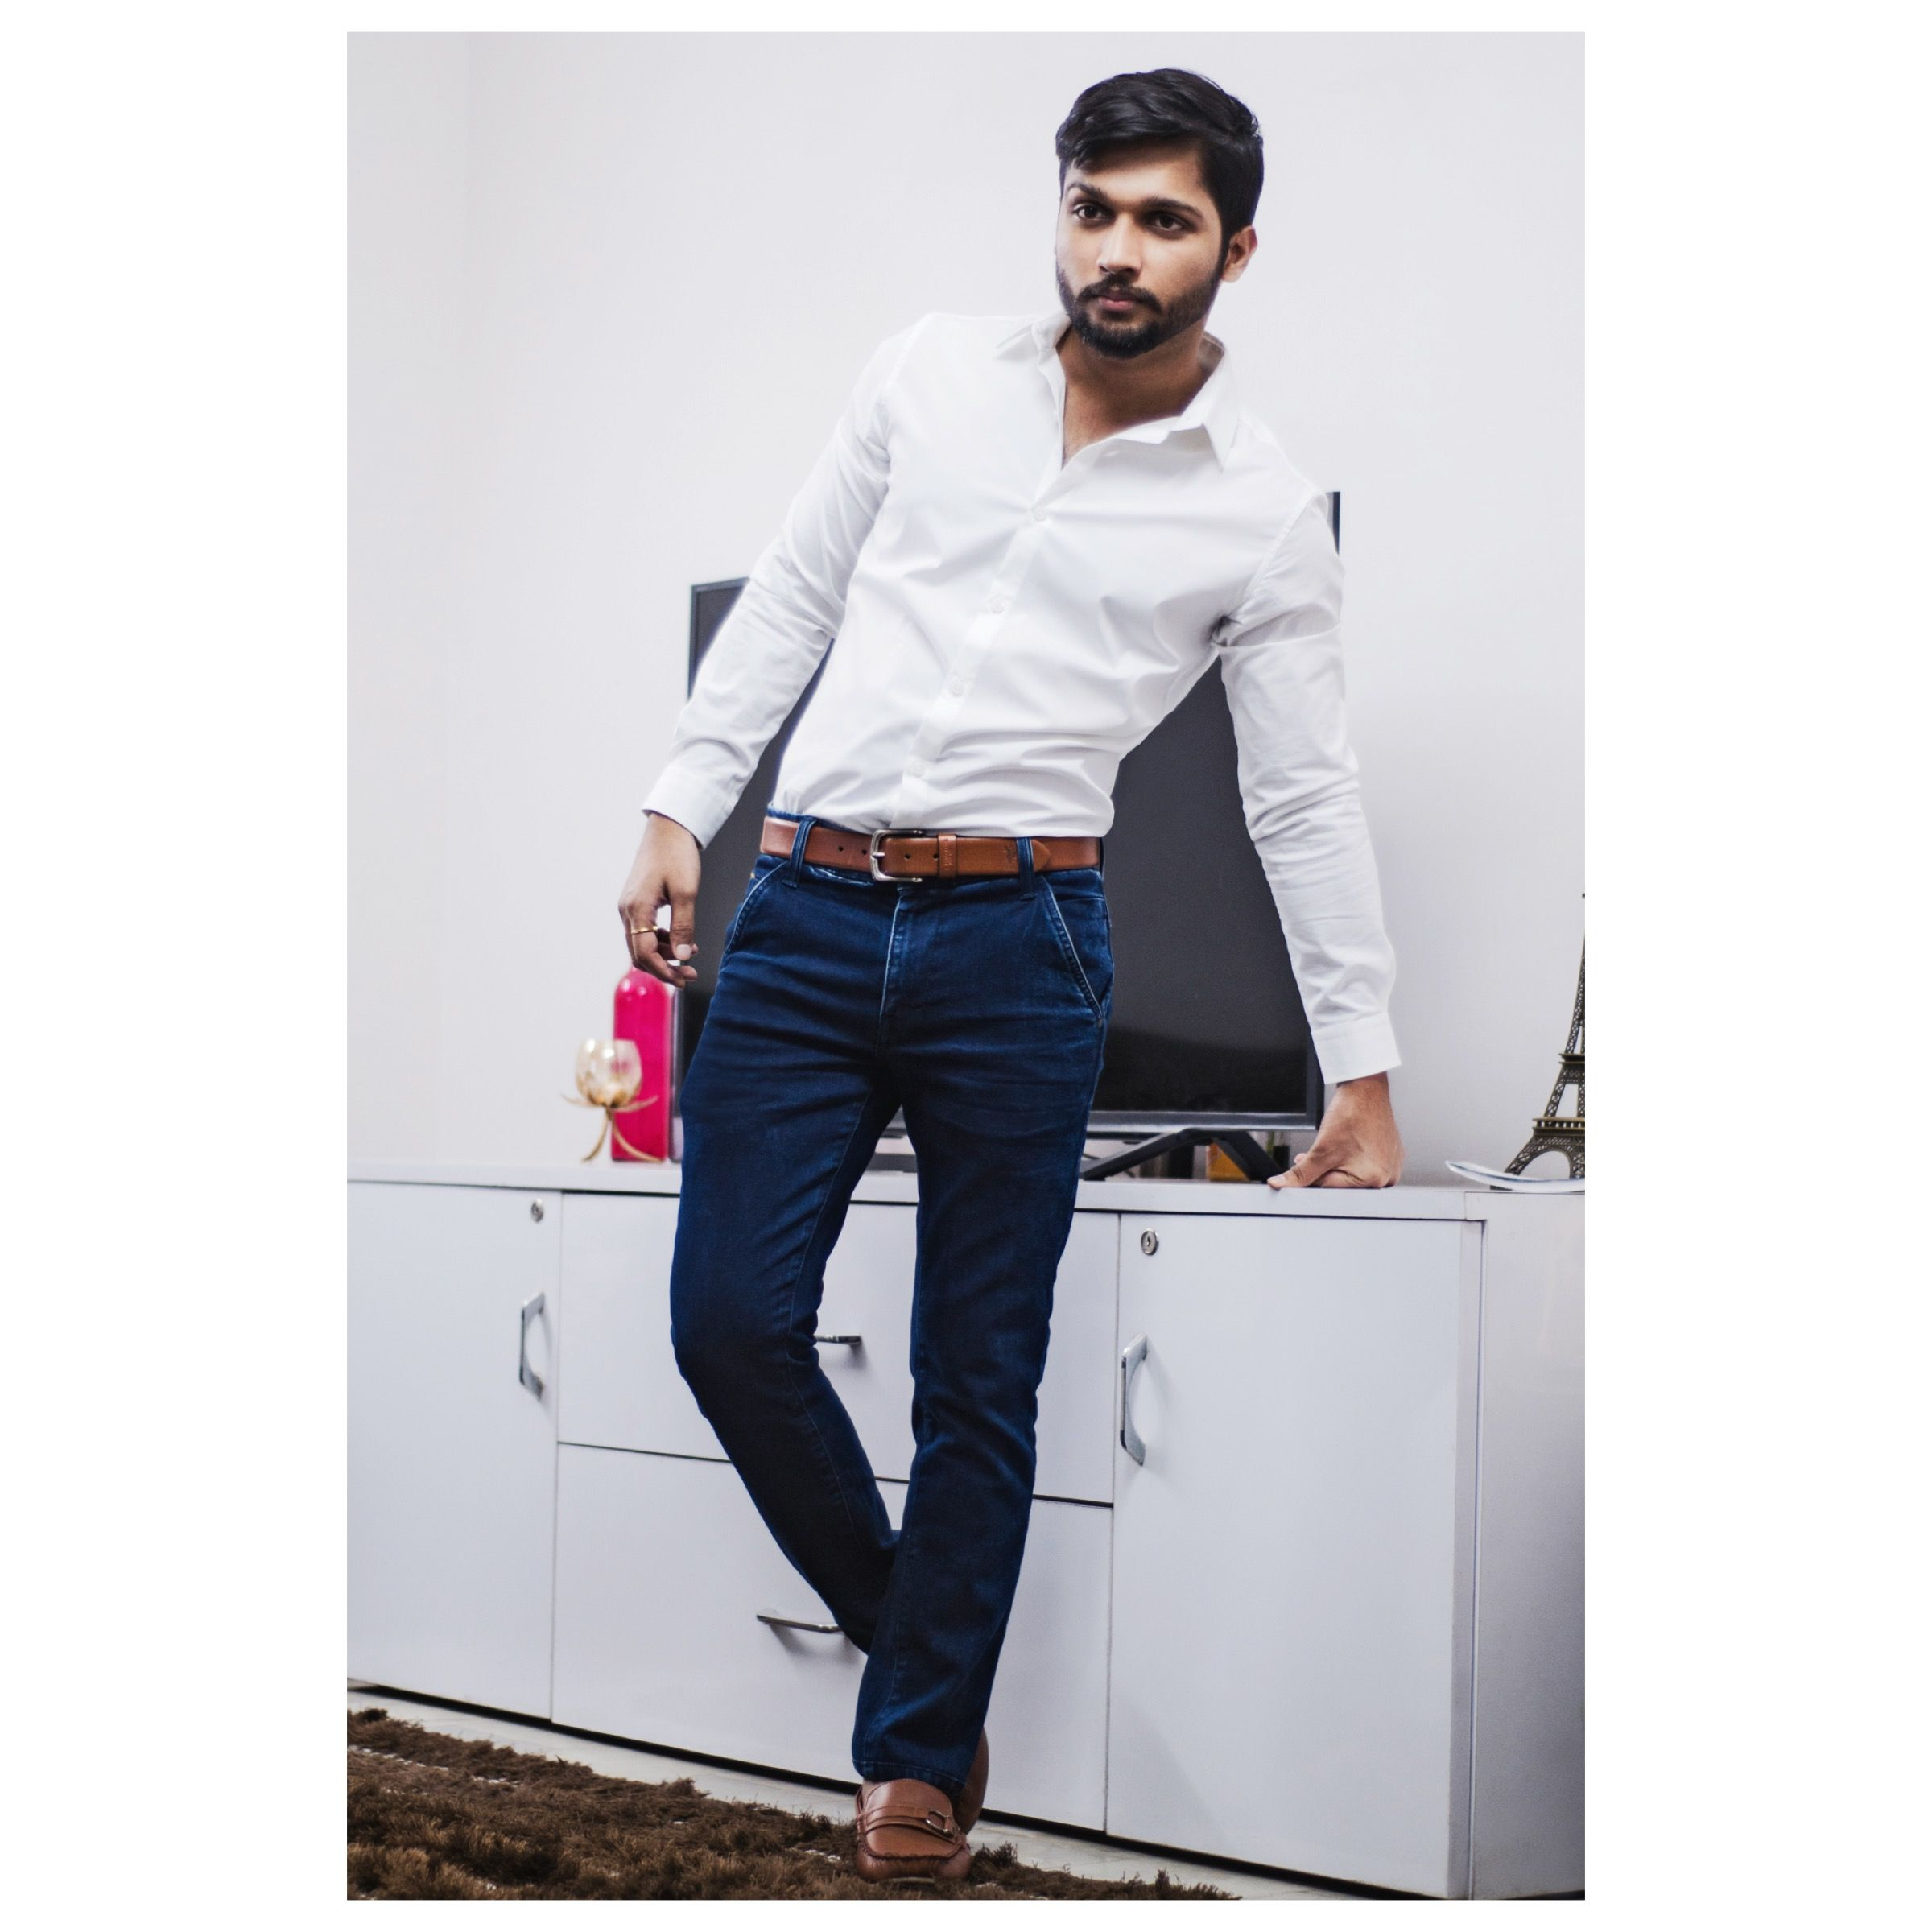 2440d6c700a9d White Shirt Blue Jeans Brown Loafers | Lixnet AG